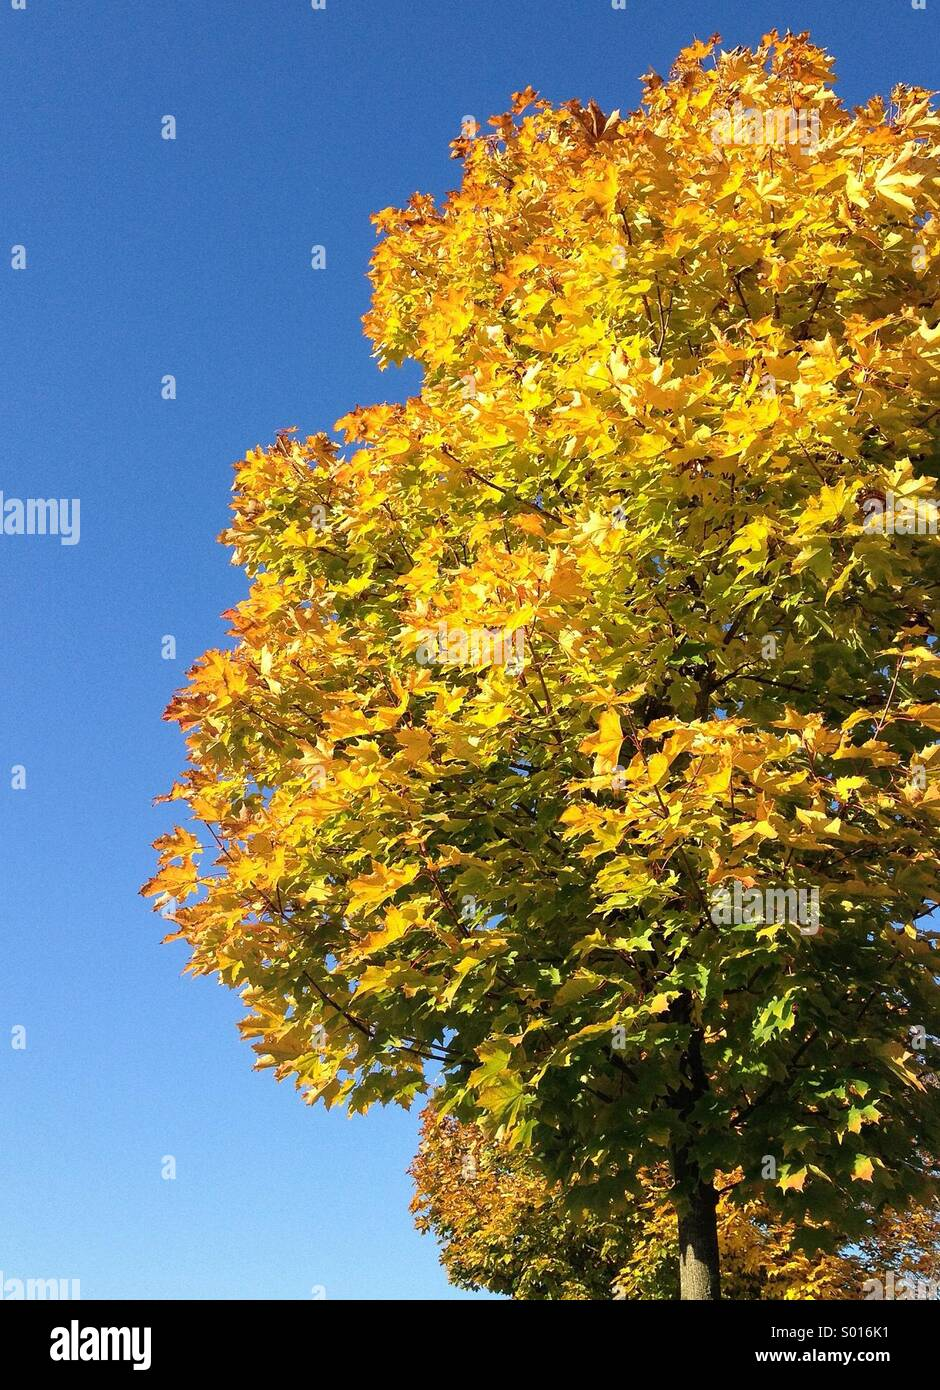 Fall leaves - Stock Image